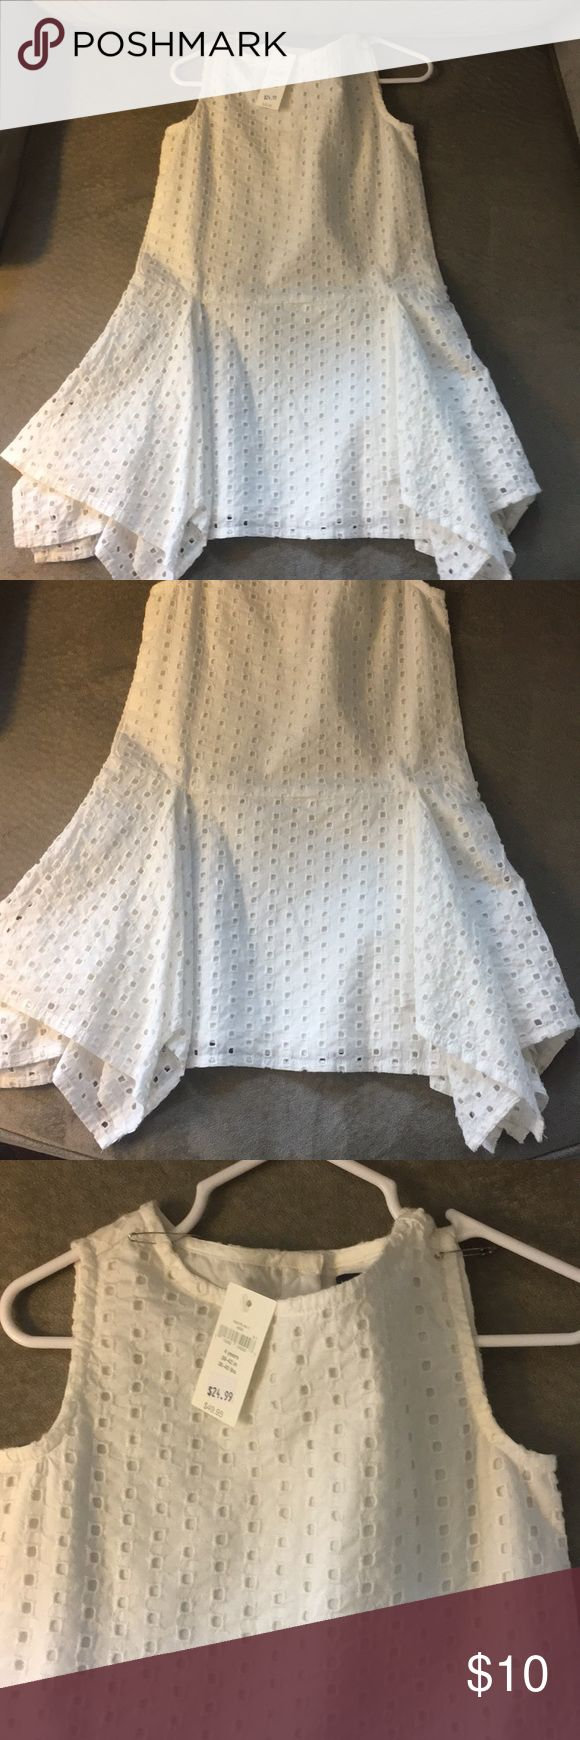 Baby Gap Dress—Brand New! Baby Gap dress brand new! Handkerchief style on the sides. Eyelet type fabric (see close-up). Smoke and pet free home. Baby Gap Dresses Casual